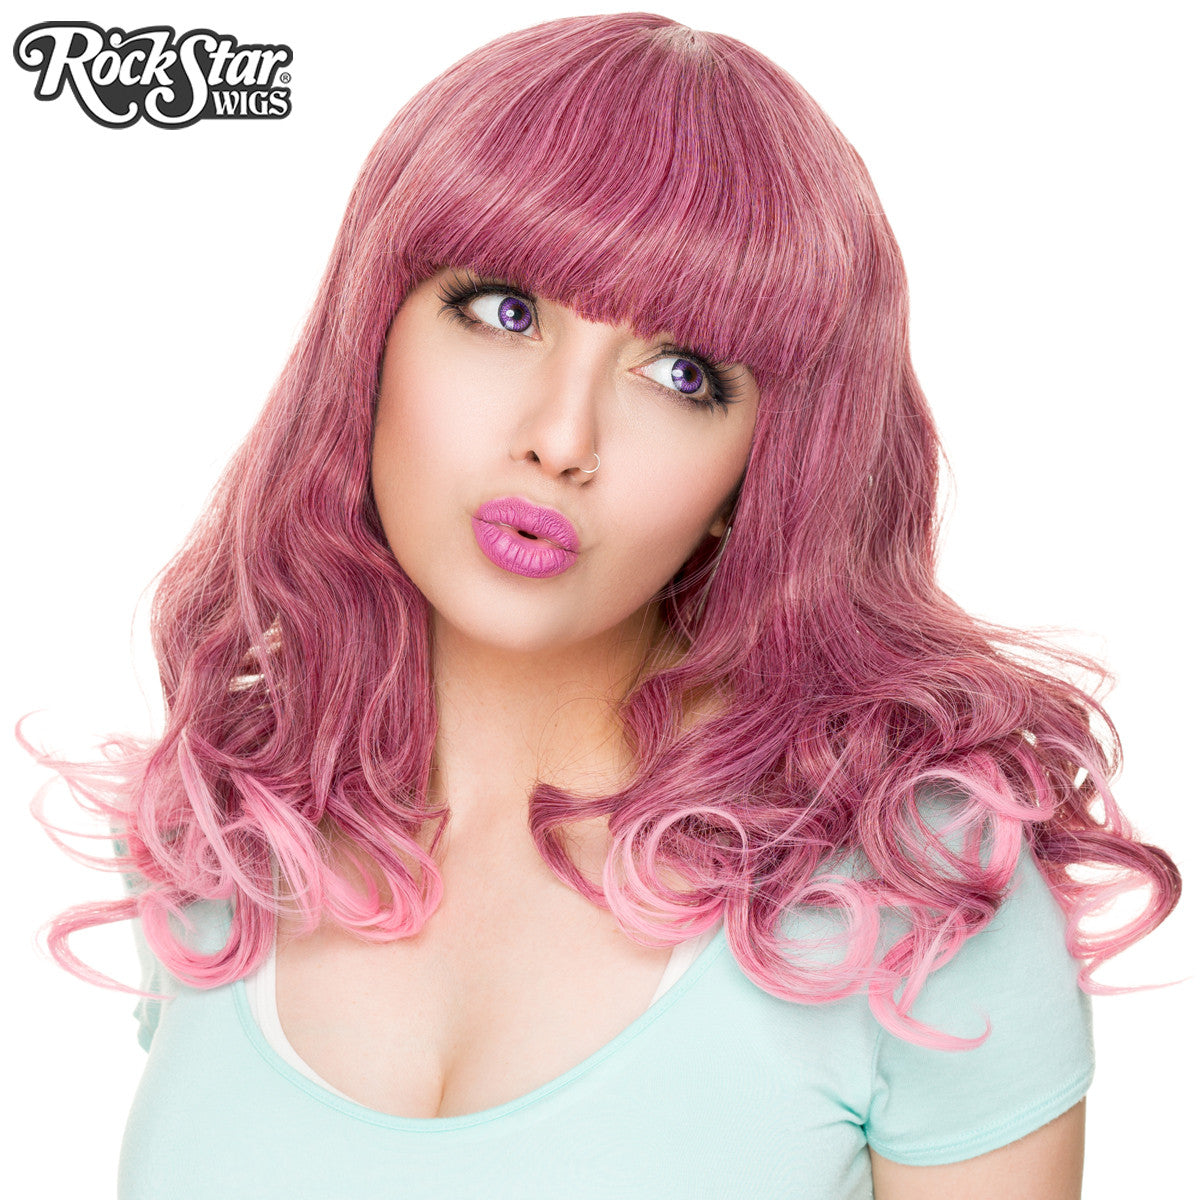 RockStar Wigs® <br> Bang Bang™ Collection - Rose Fade - 00818